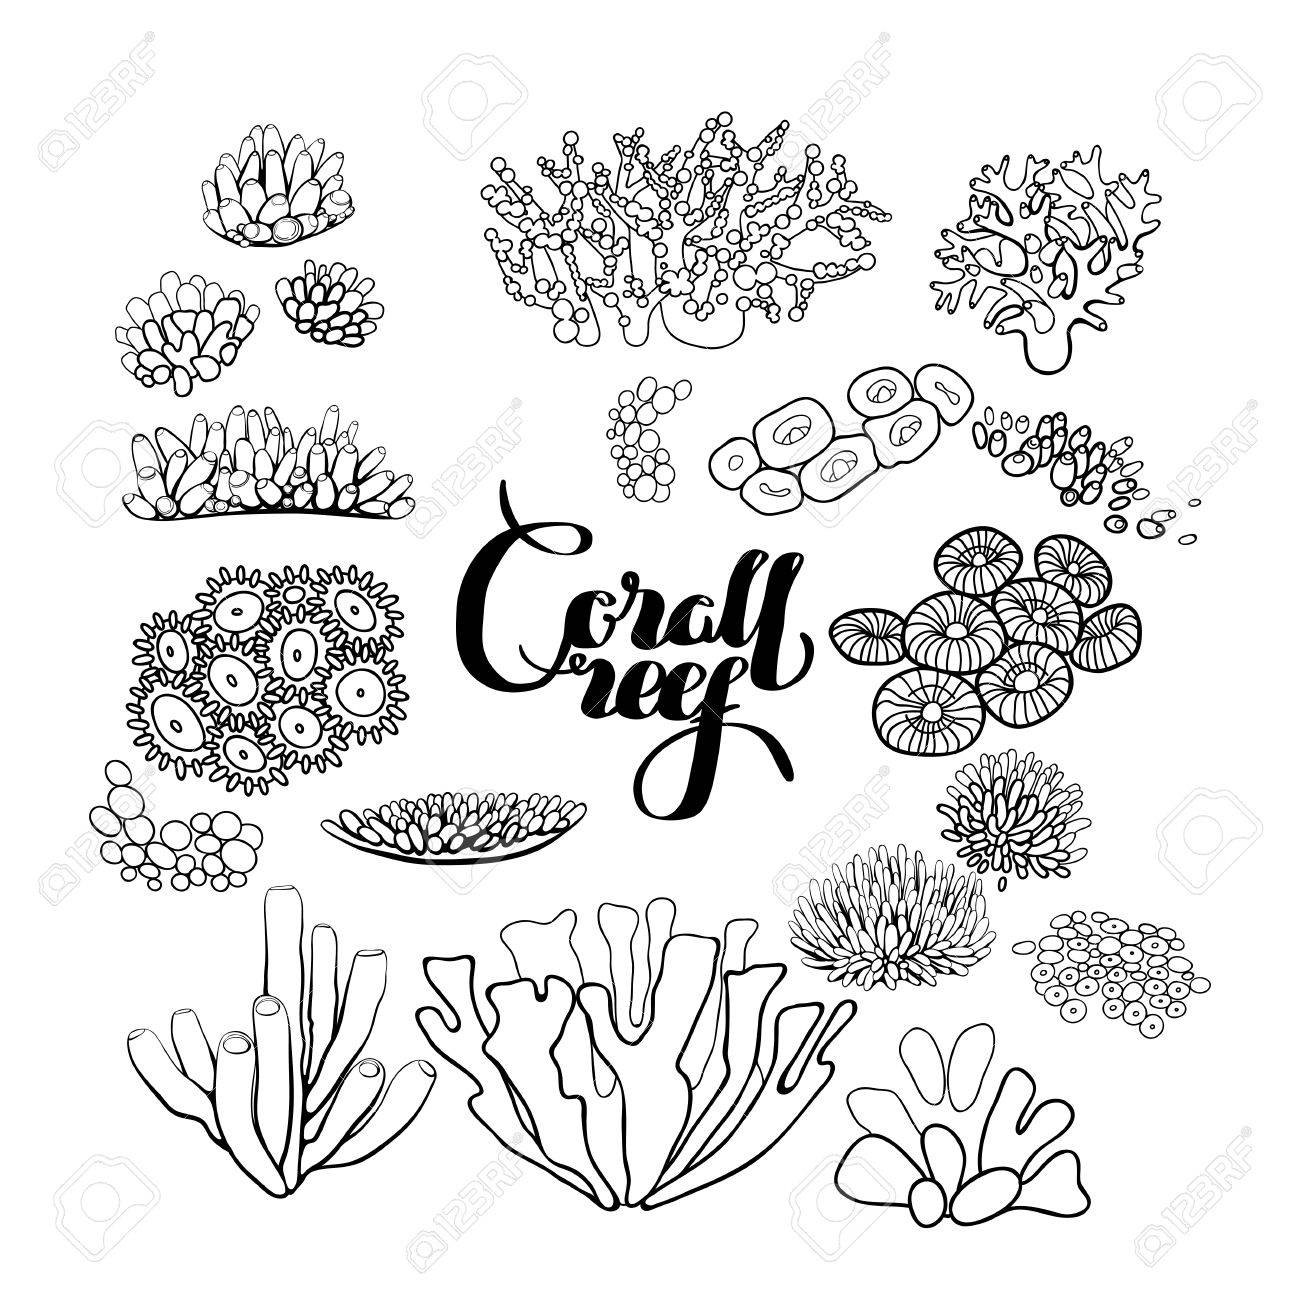 Captivating Collection Of Ocean Plants And Coral Reef Elements Drawn In Line Art Style  Isolated On White